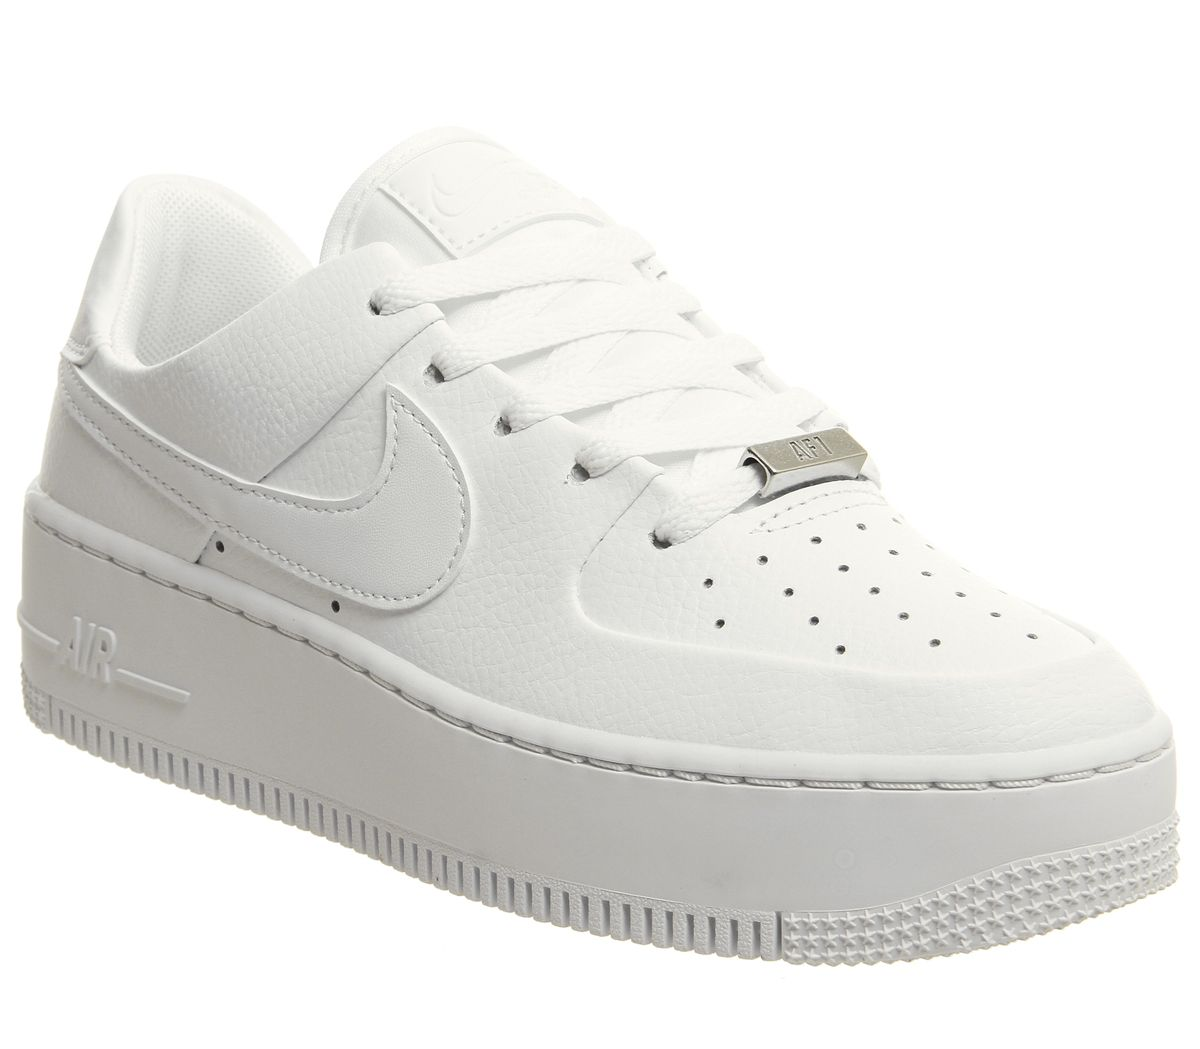 innovative design 7ea7e 7da93 Nike Air Force 1 Sage Trainers White - Hers trainers